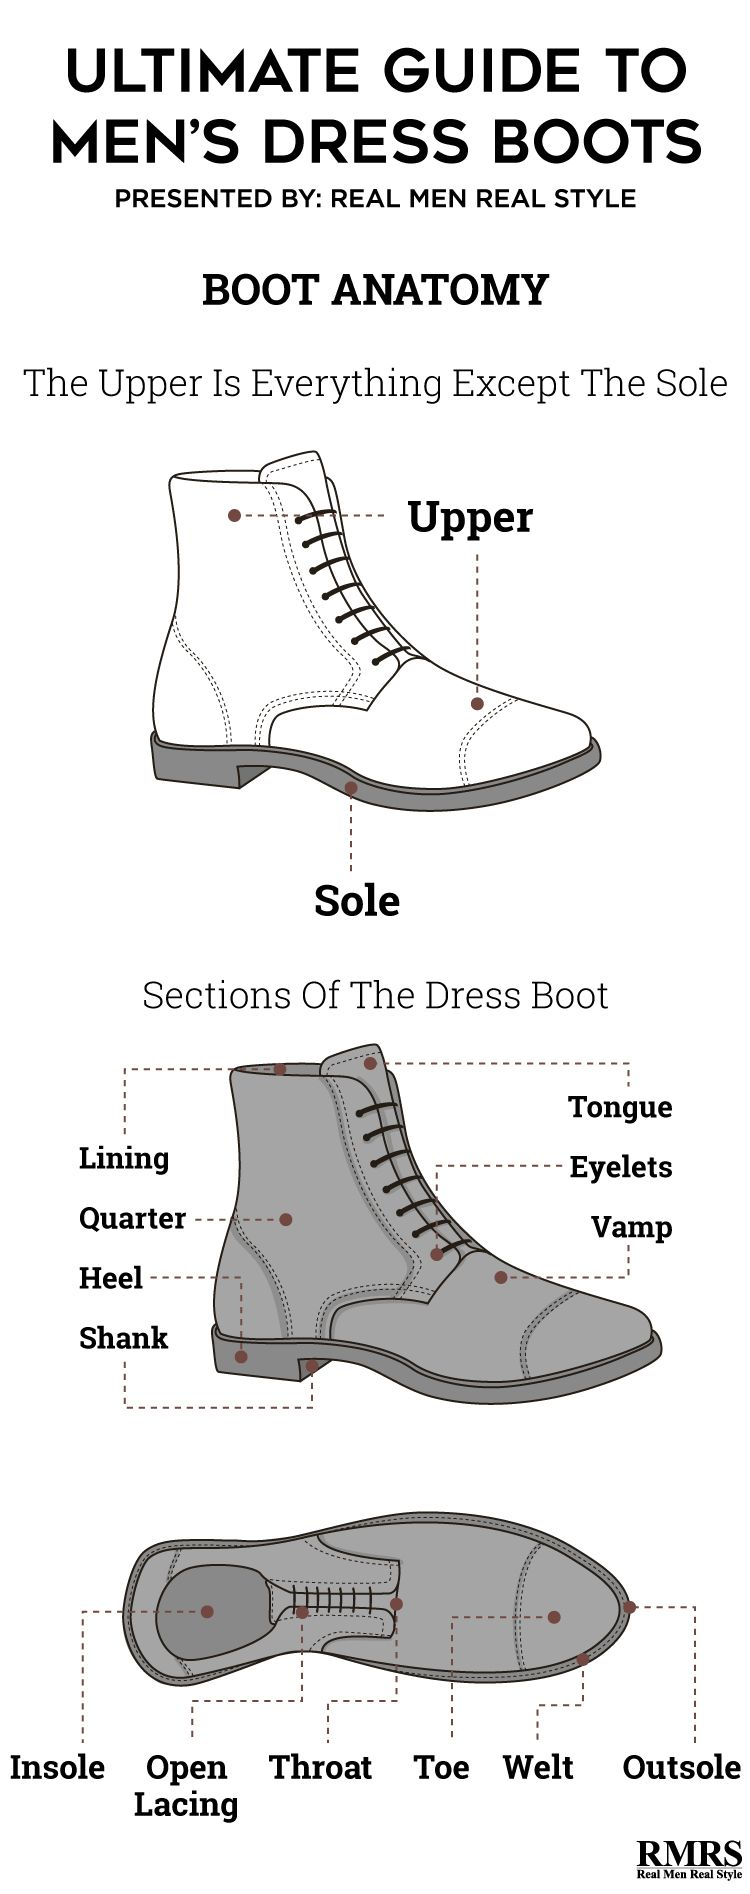 8233aaae43c4f2 What ONE shoe embodies all these words? The answer? It's not a shoe…...  It's the dress boot. Are dress boots really necessary?